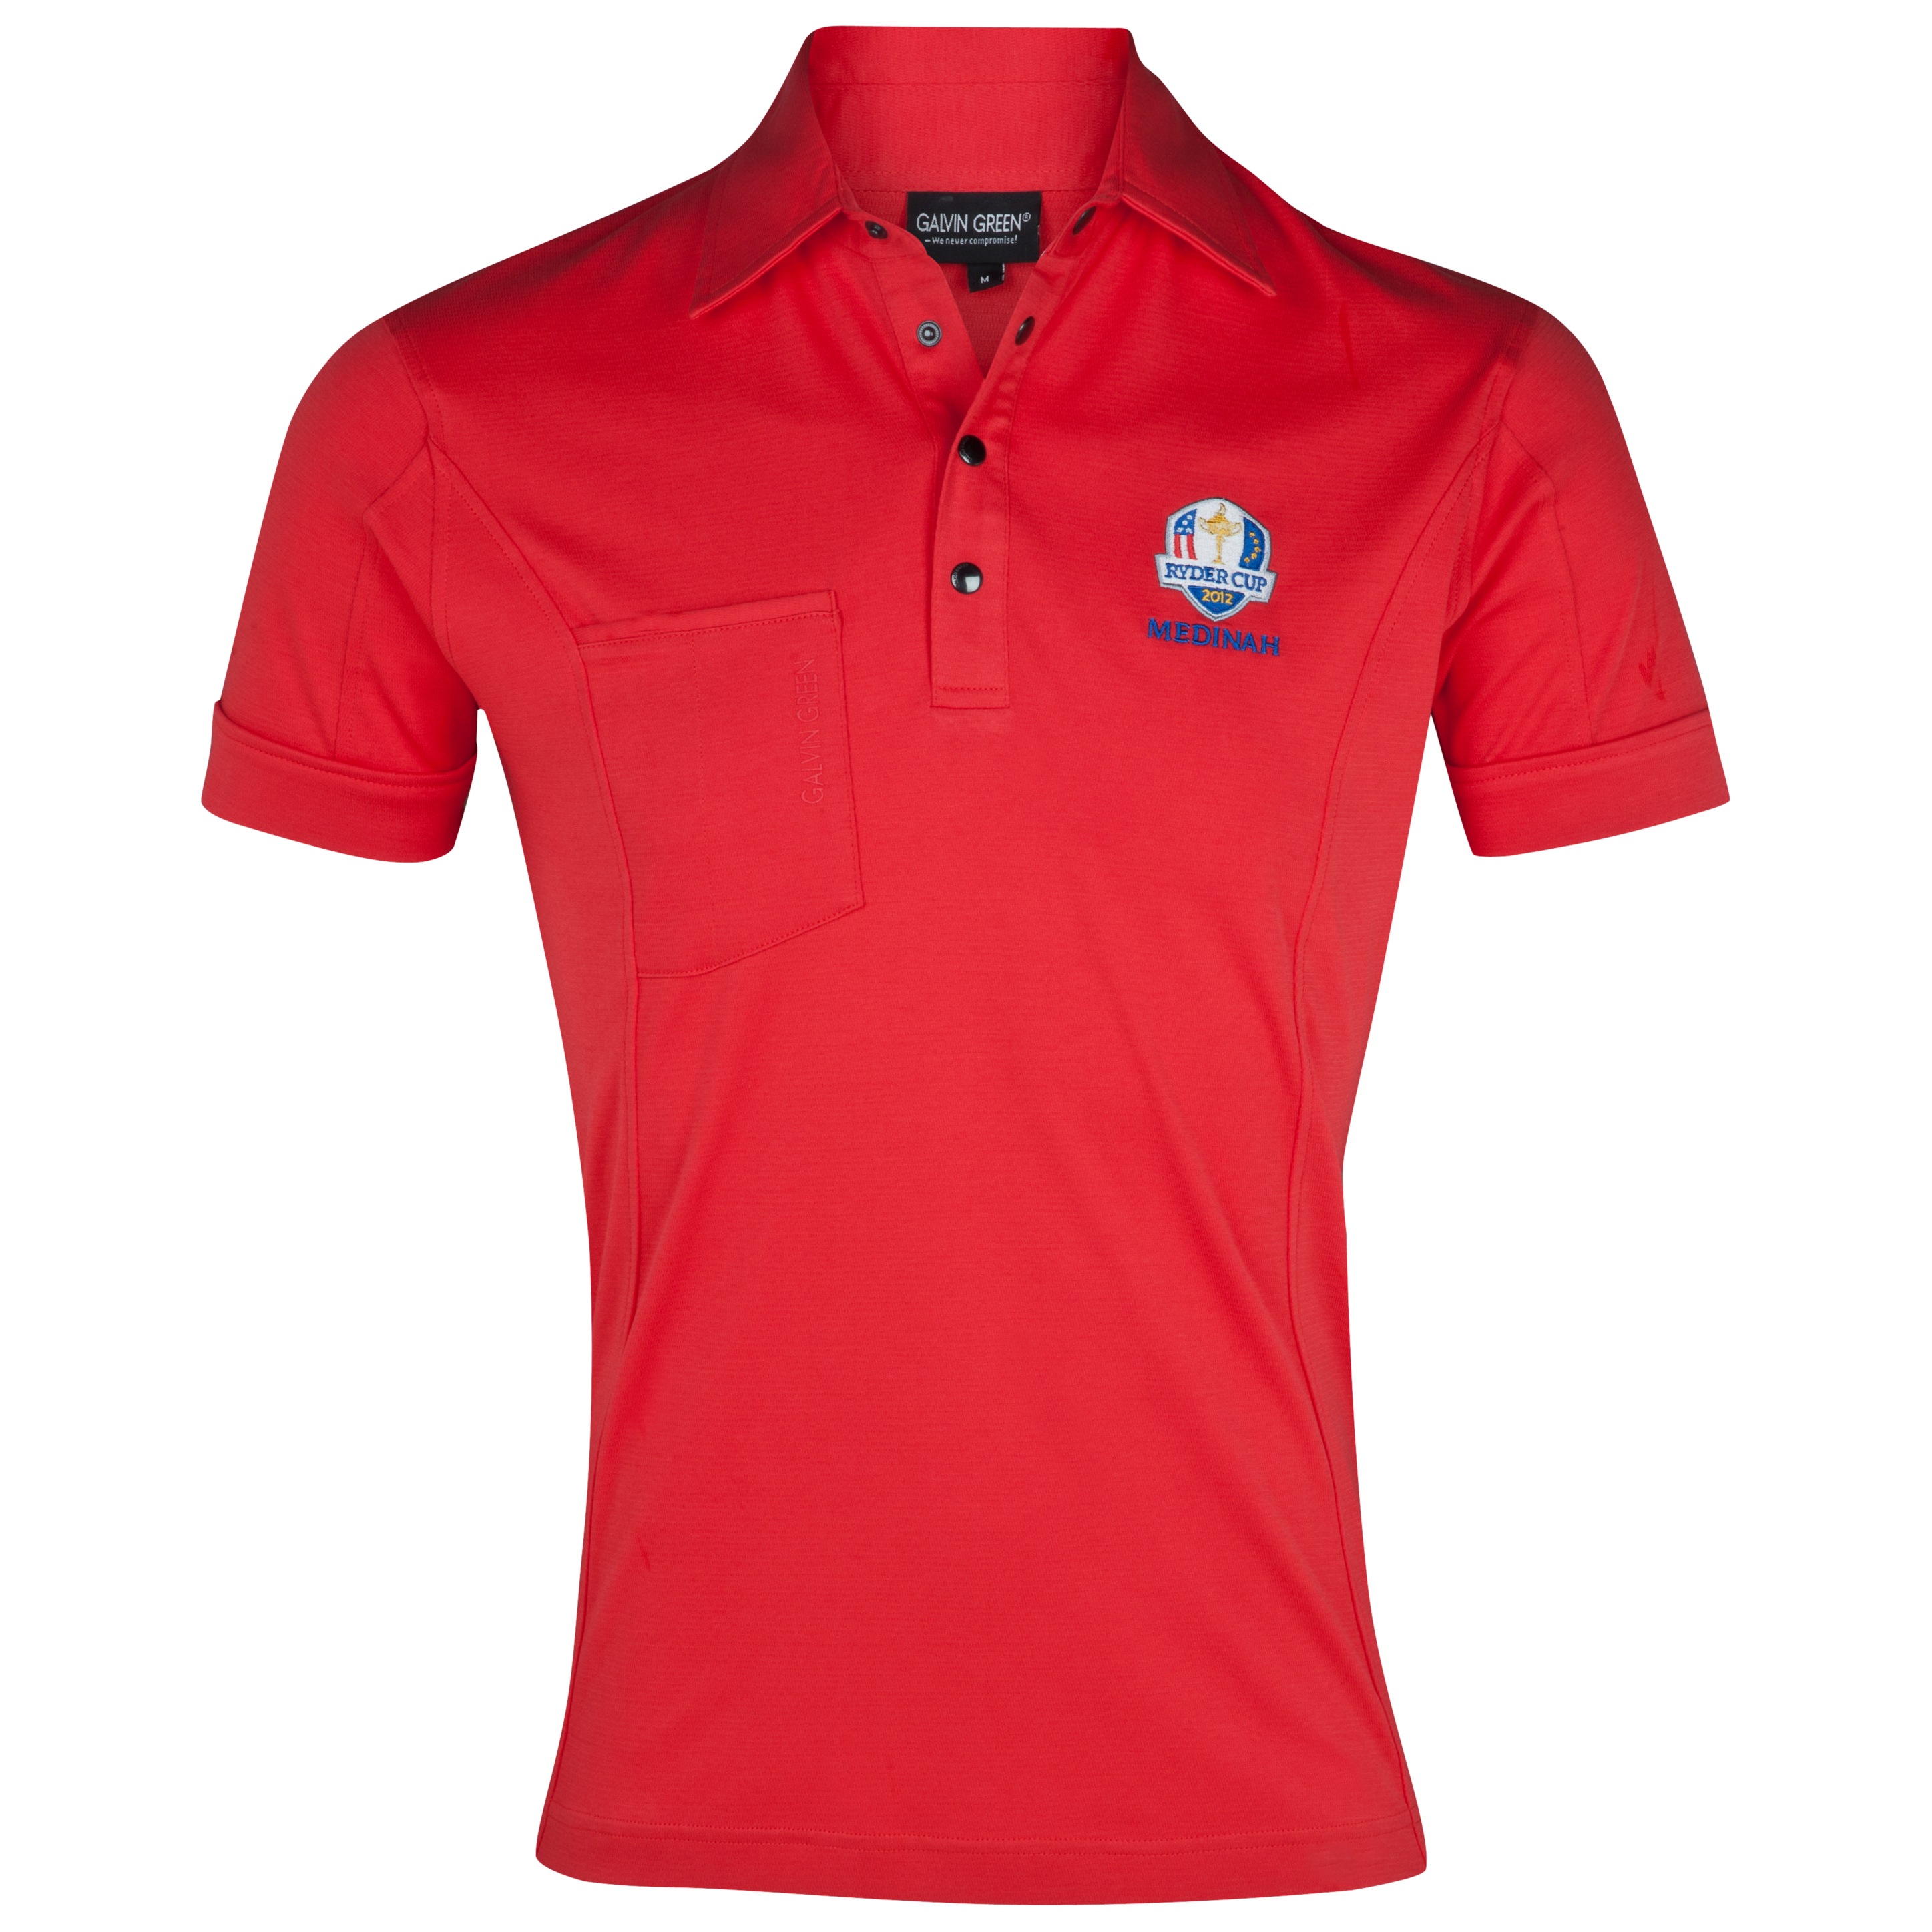 The 2014 Ryder Cup Galvin Green Golf Polo - Chilli Red